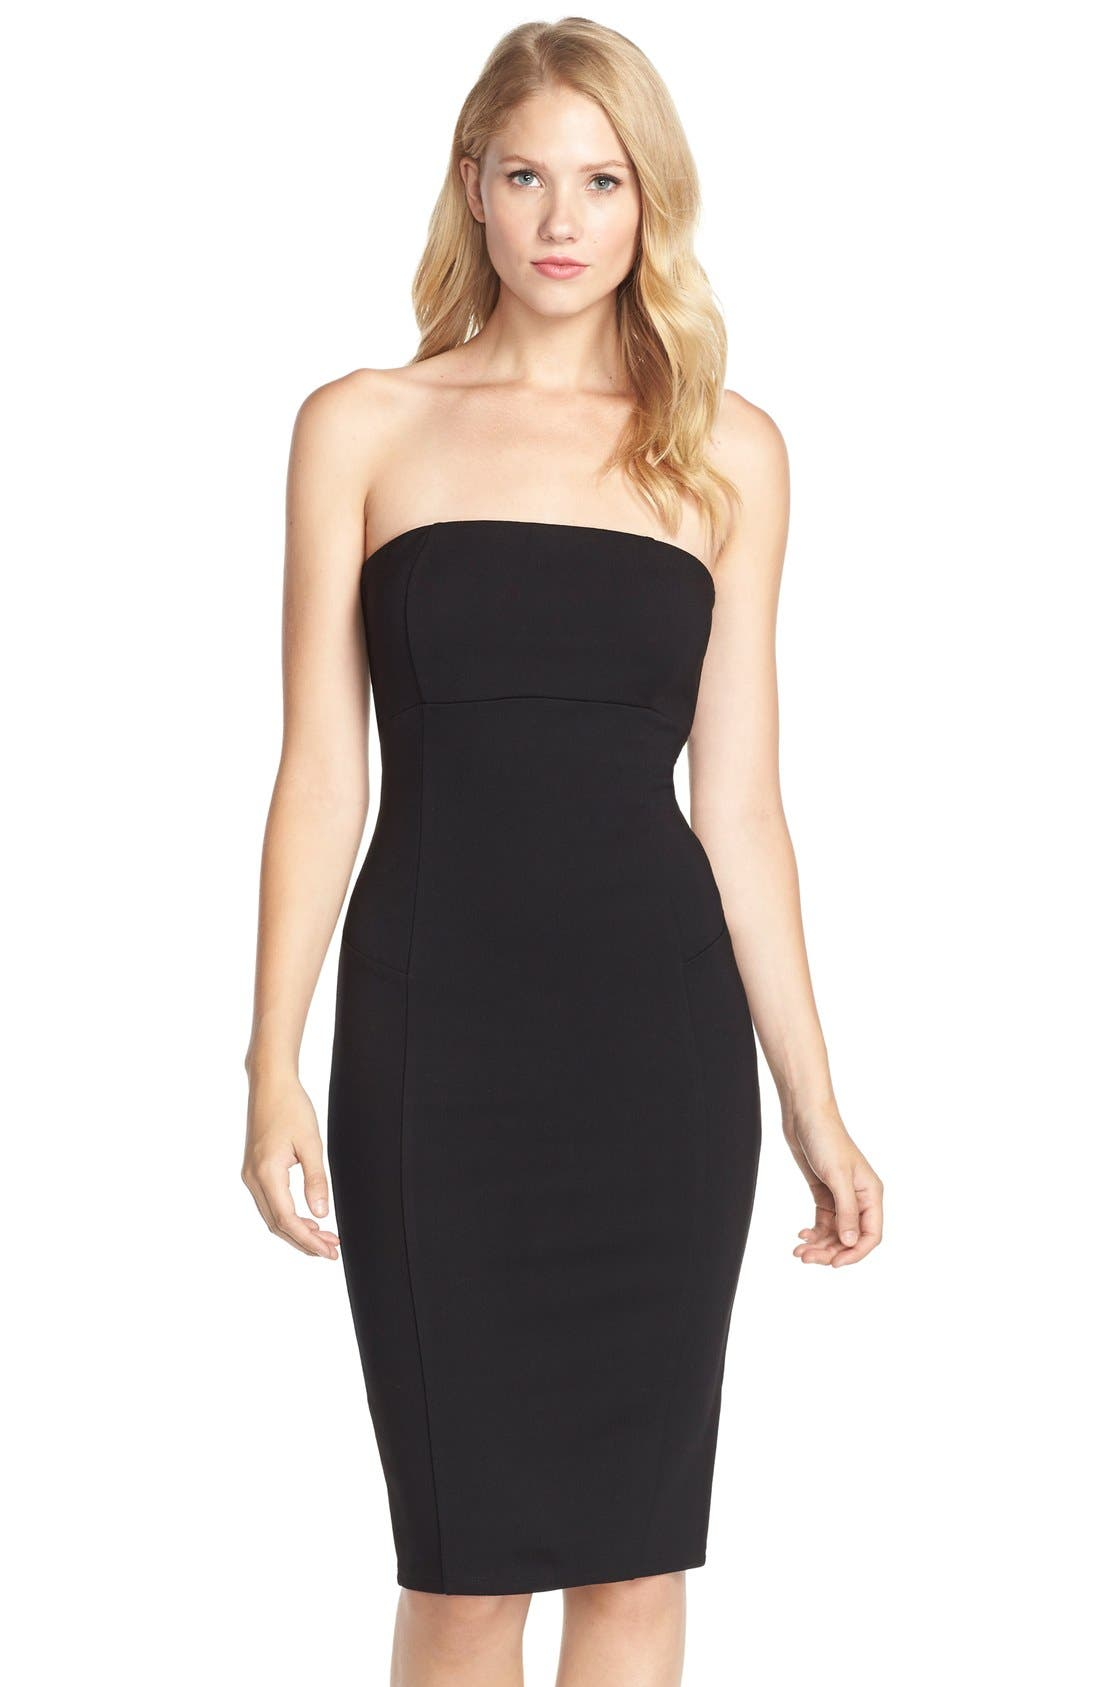 black strapless dress | Nordstrom